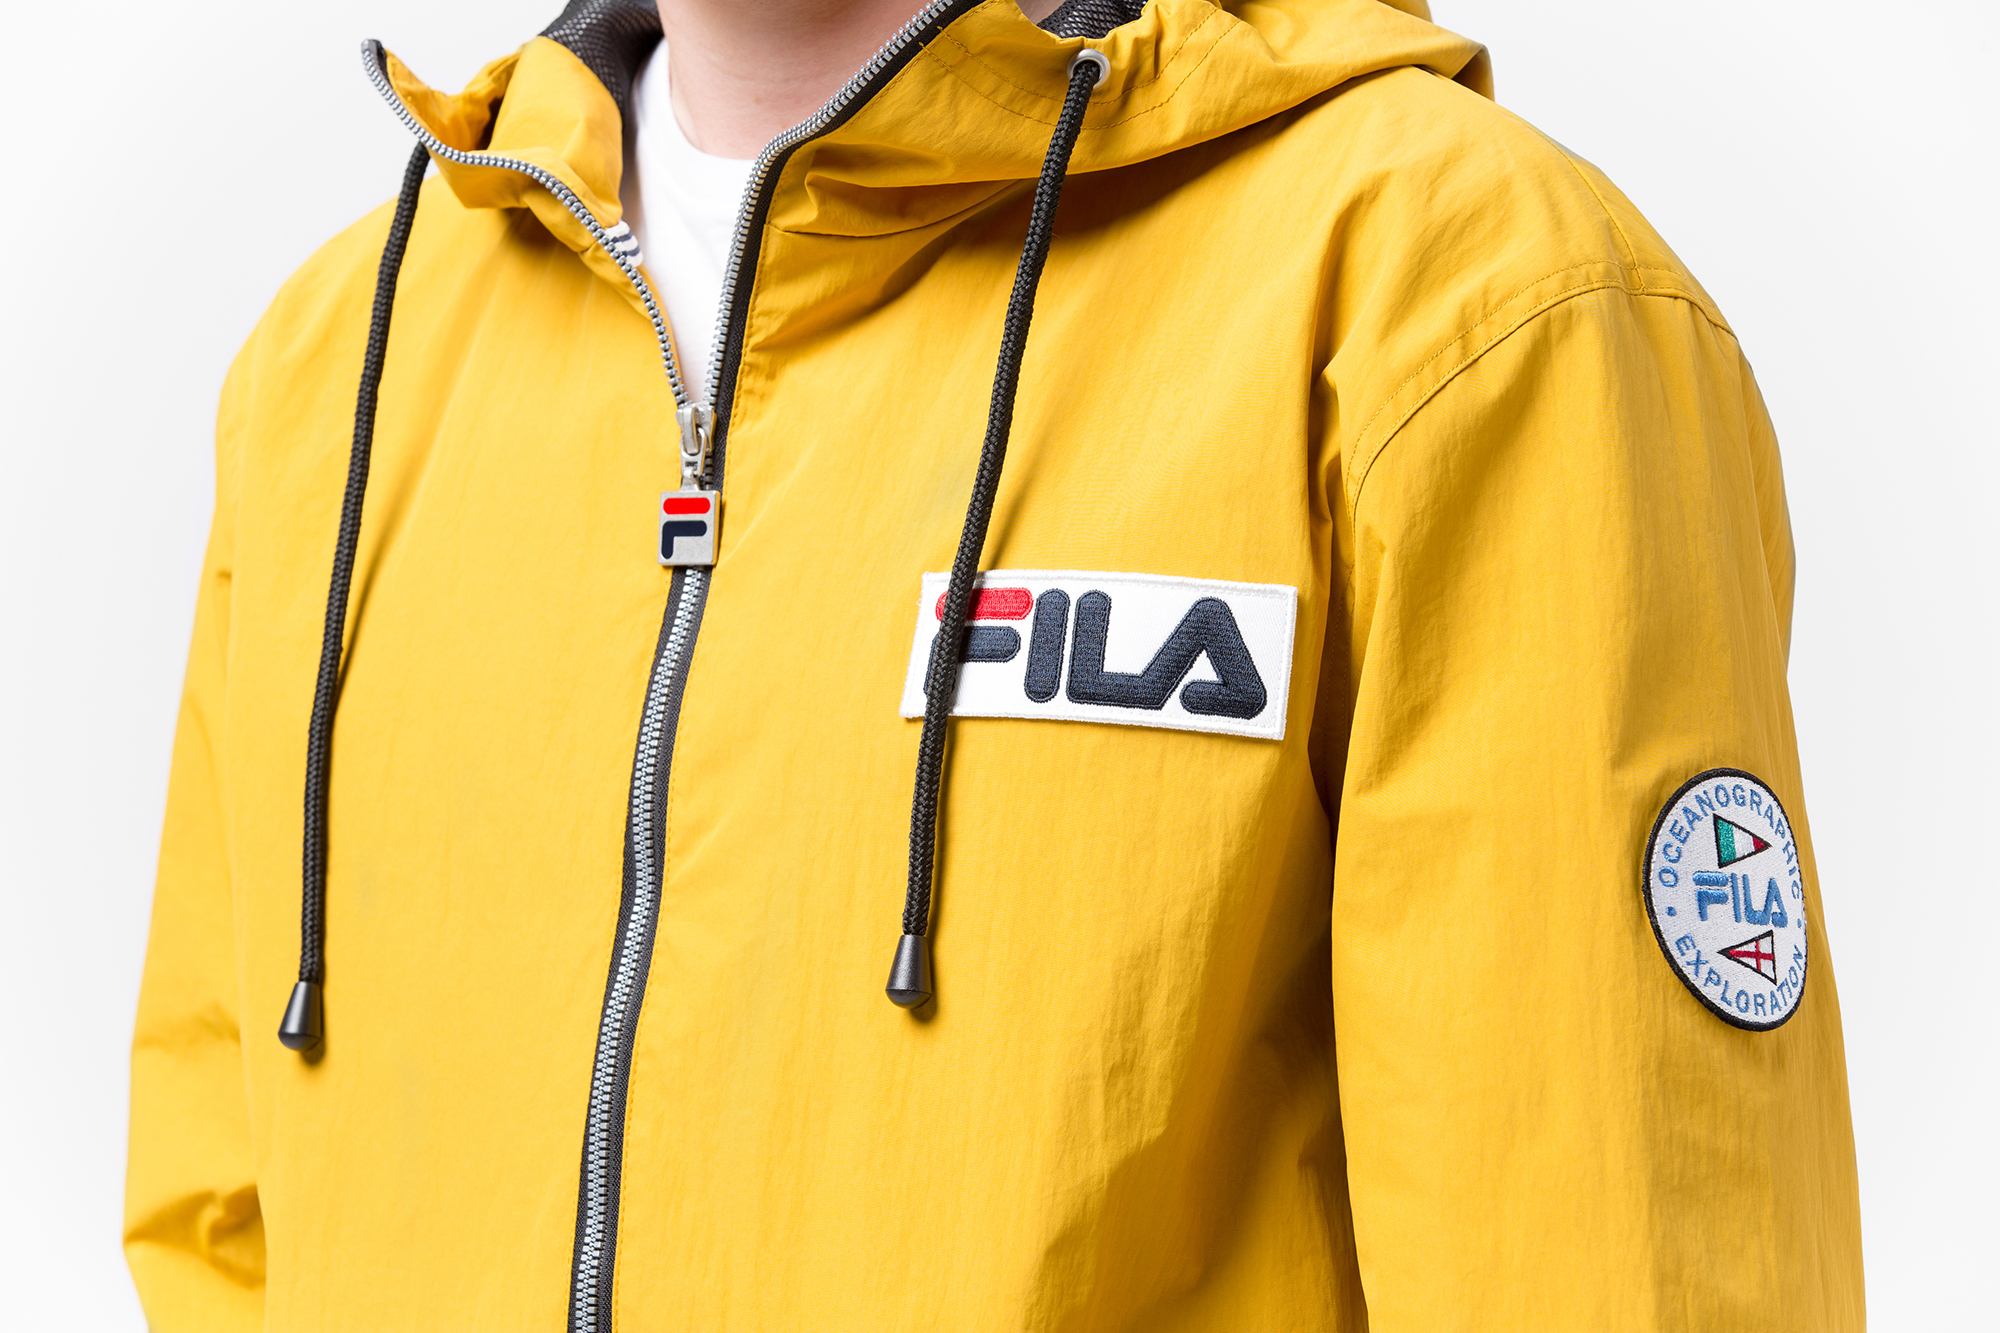 FILA Oceanographic Collection – size? Exclusive